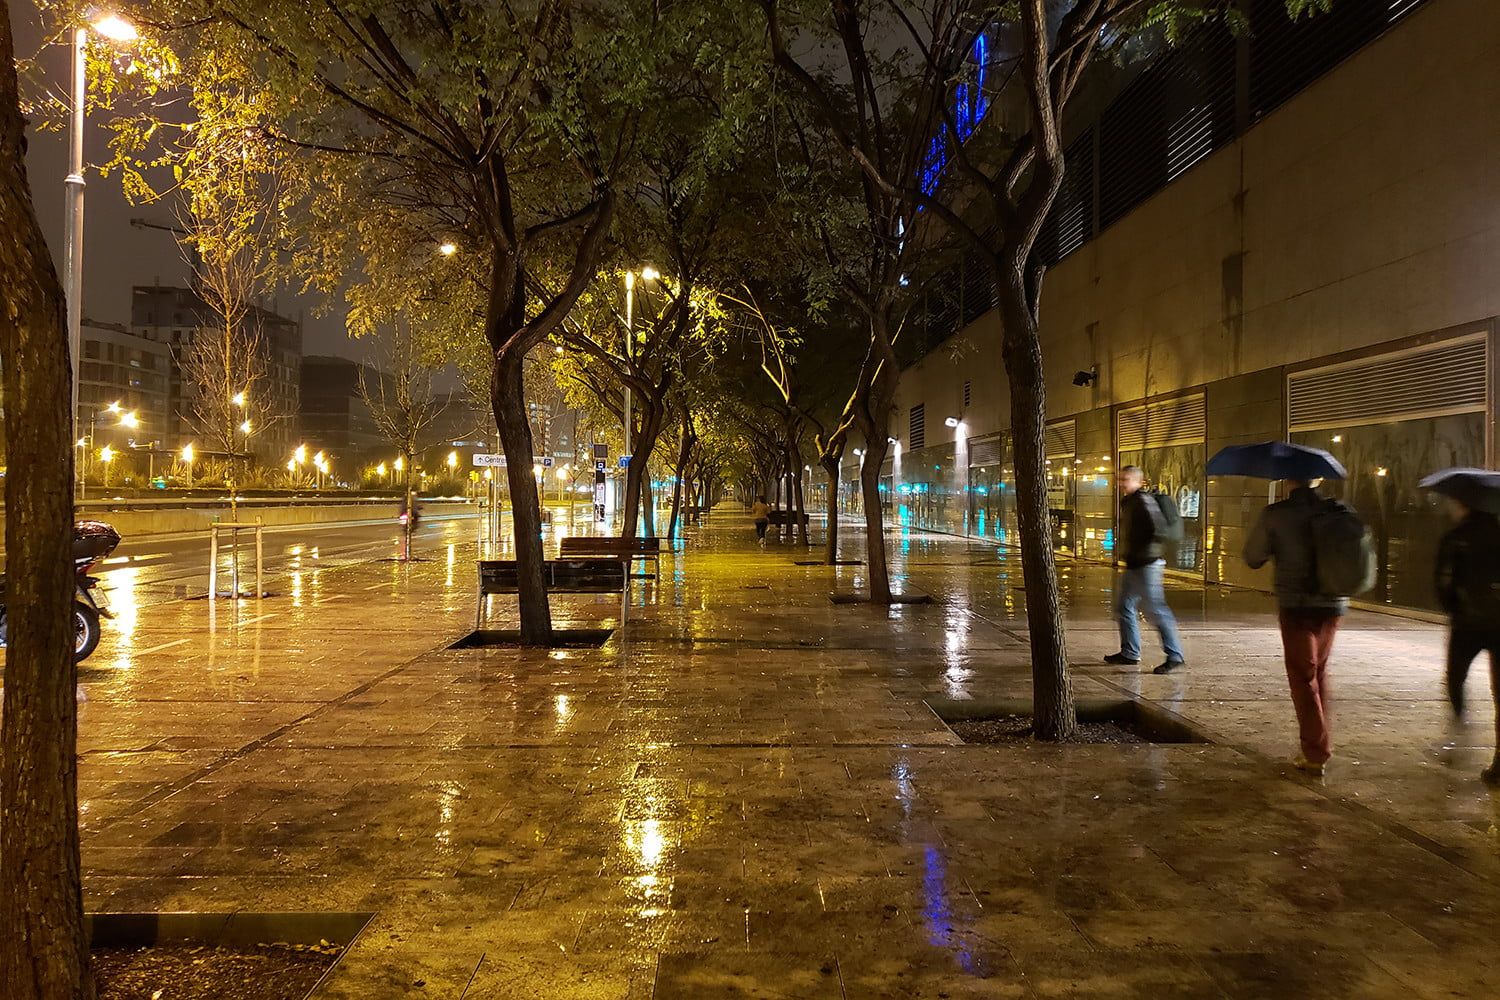 samsung galaxy s9 plus review camera samples rain and trees